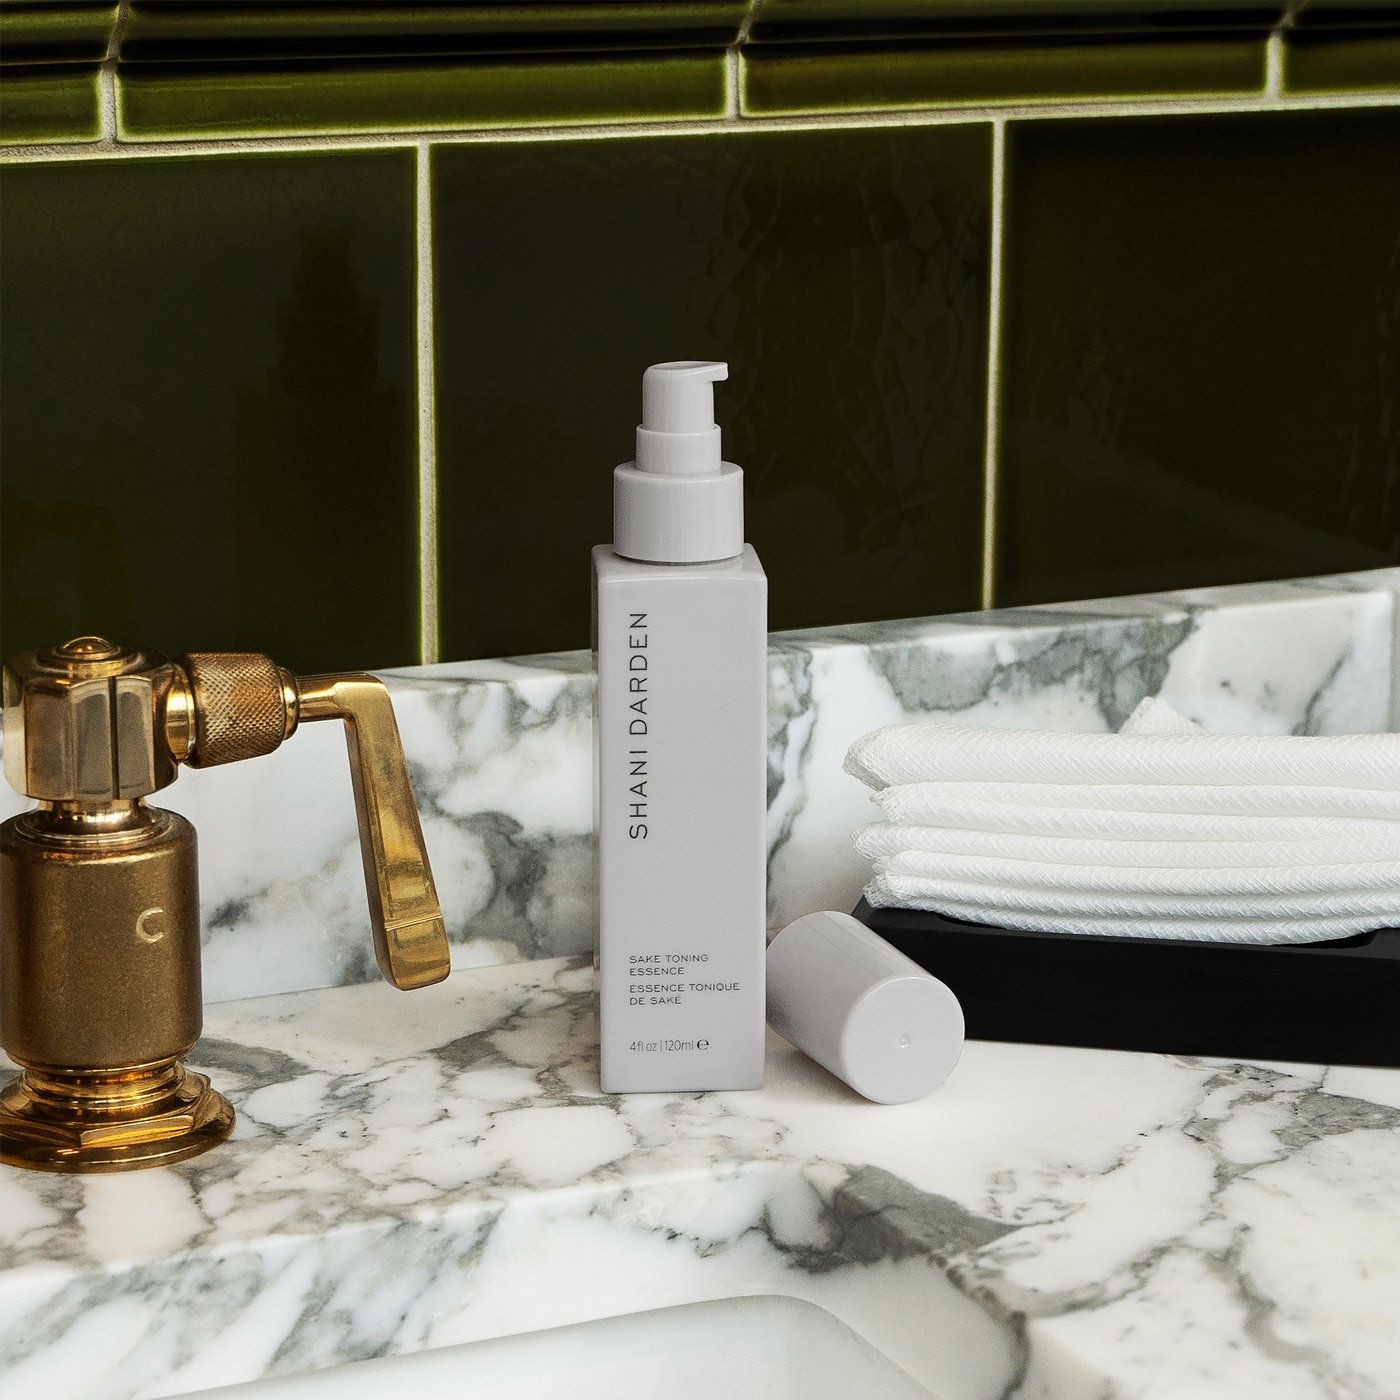 Shani Darden skincare product on marble surface